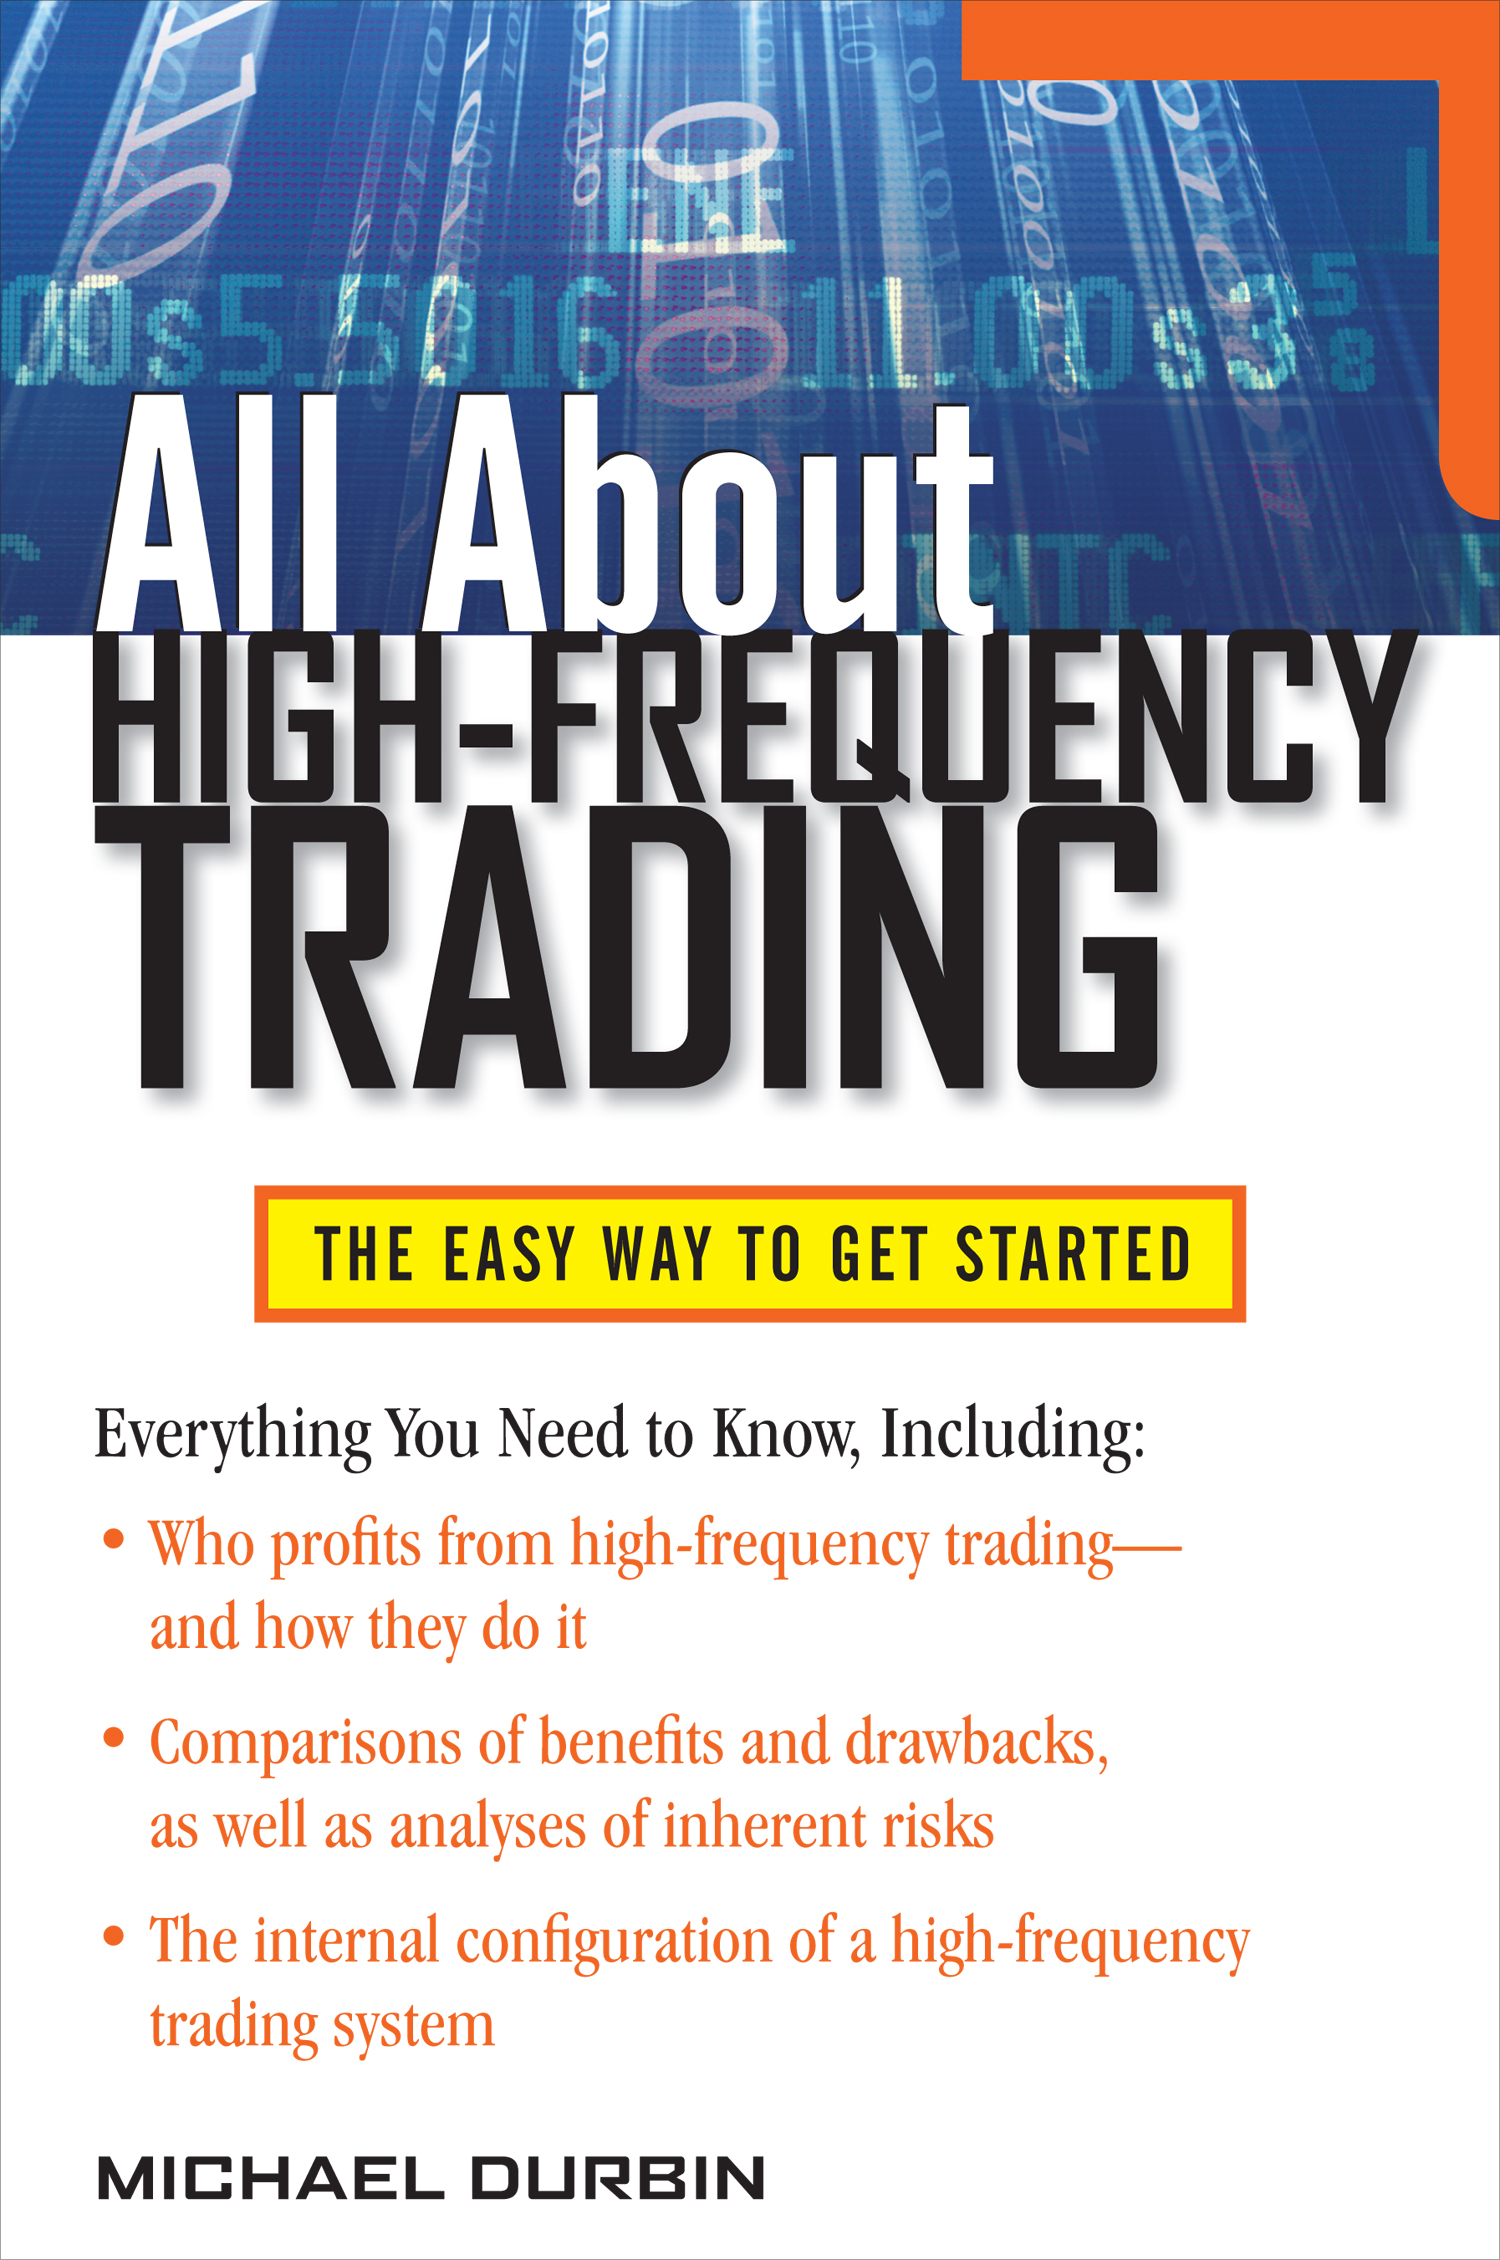 Download Ebook All About High-Frequency Trading by Michael Durbin Pdf